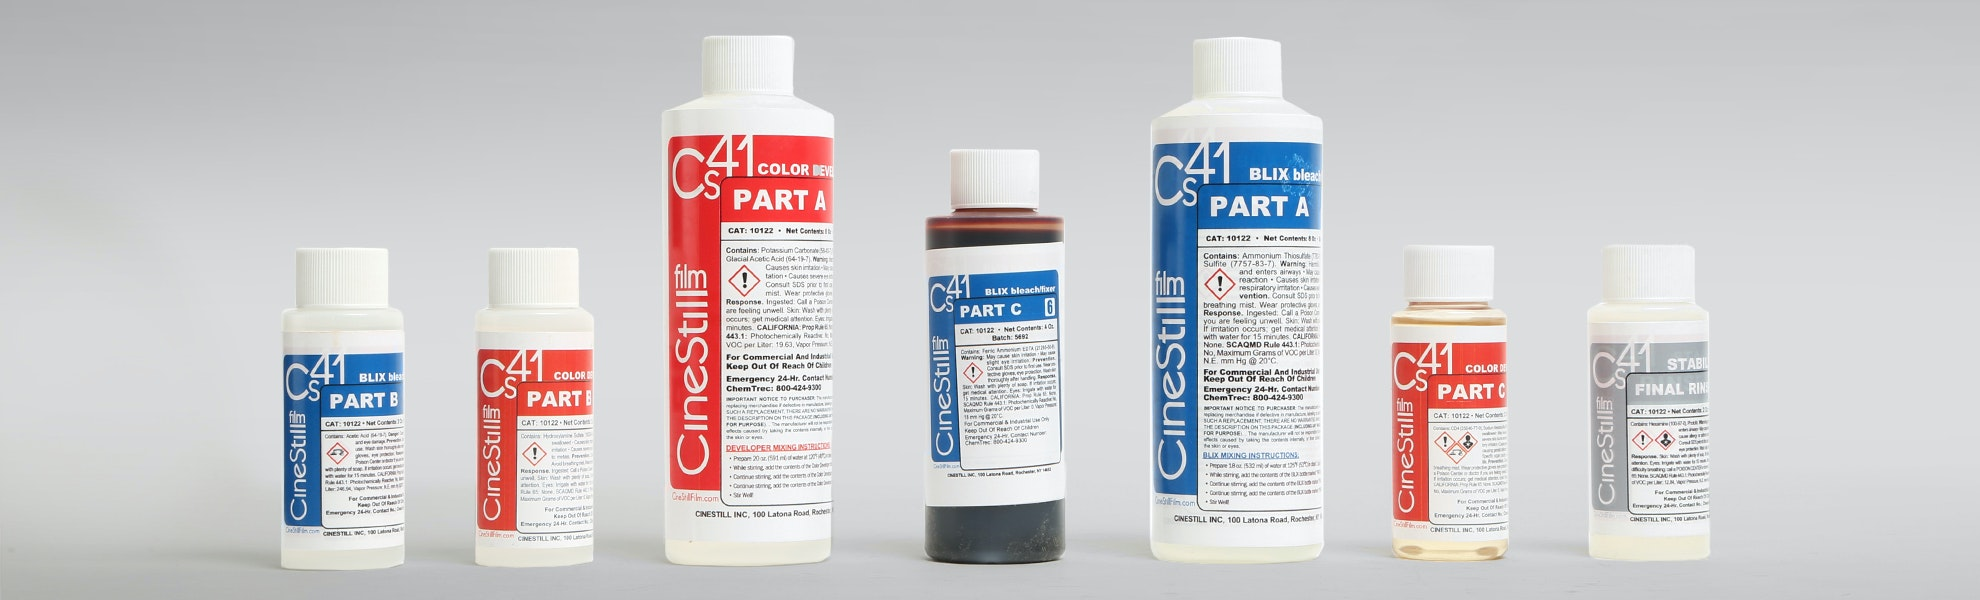 CineStill Cs41 Kit for Color Processing at Home